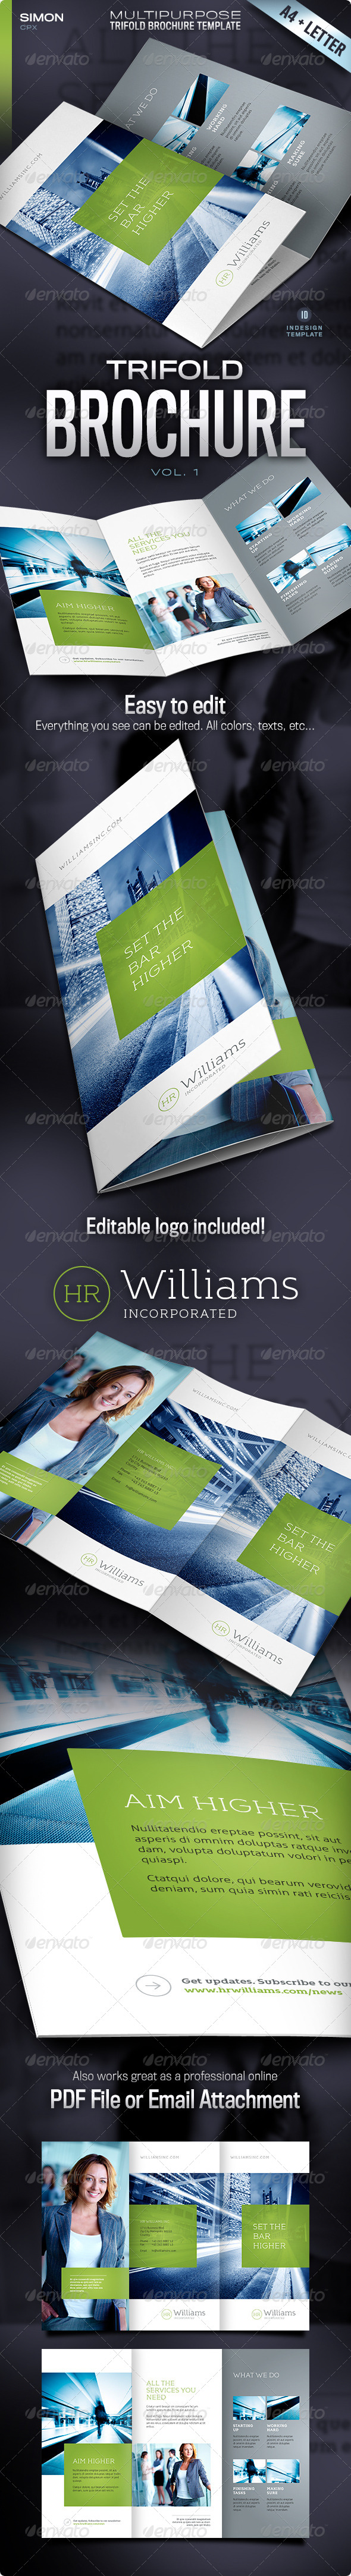 Trifold Brochure - Vol. 1 - Corporate Brochures